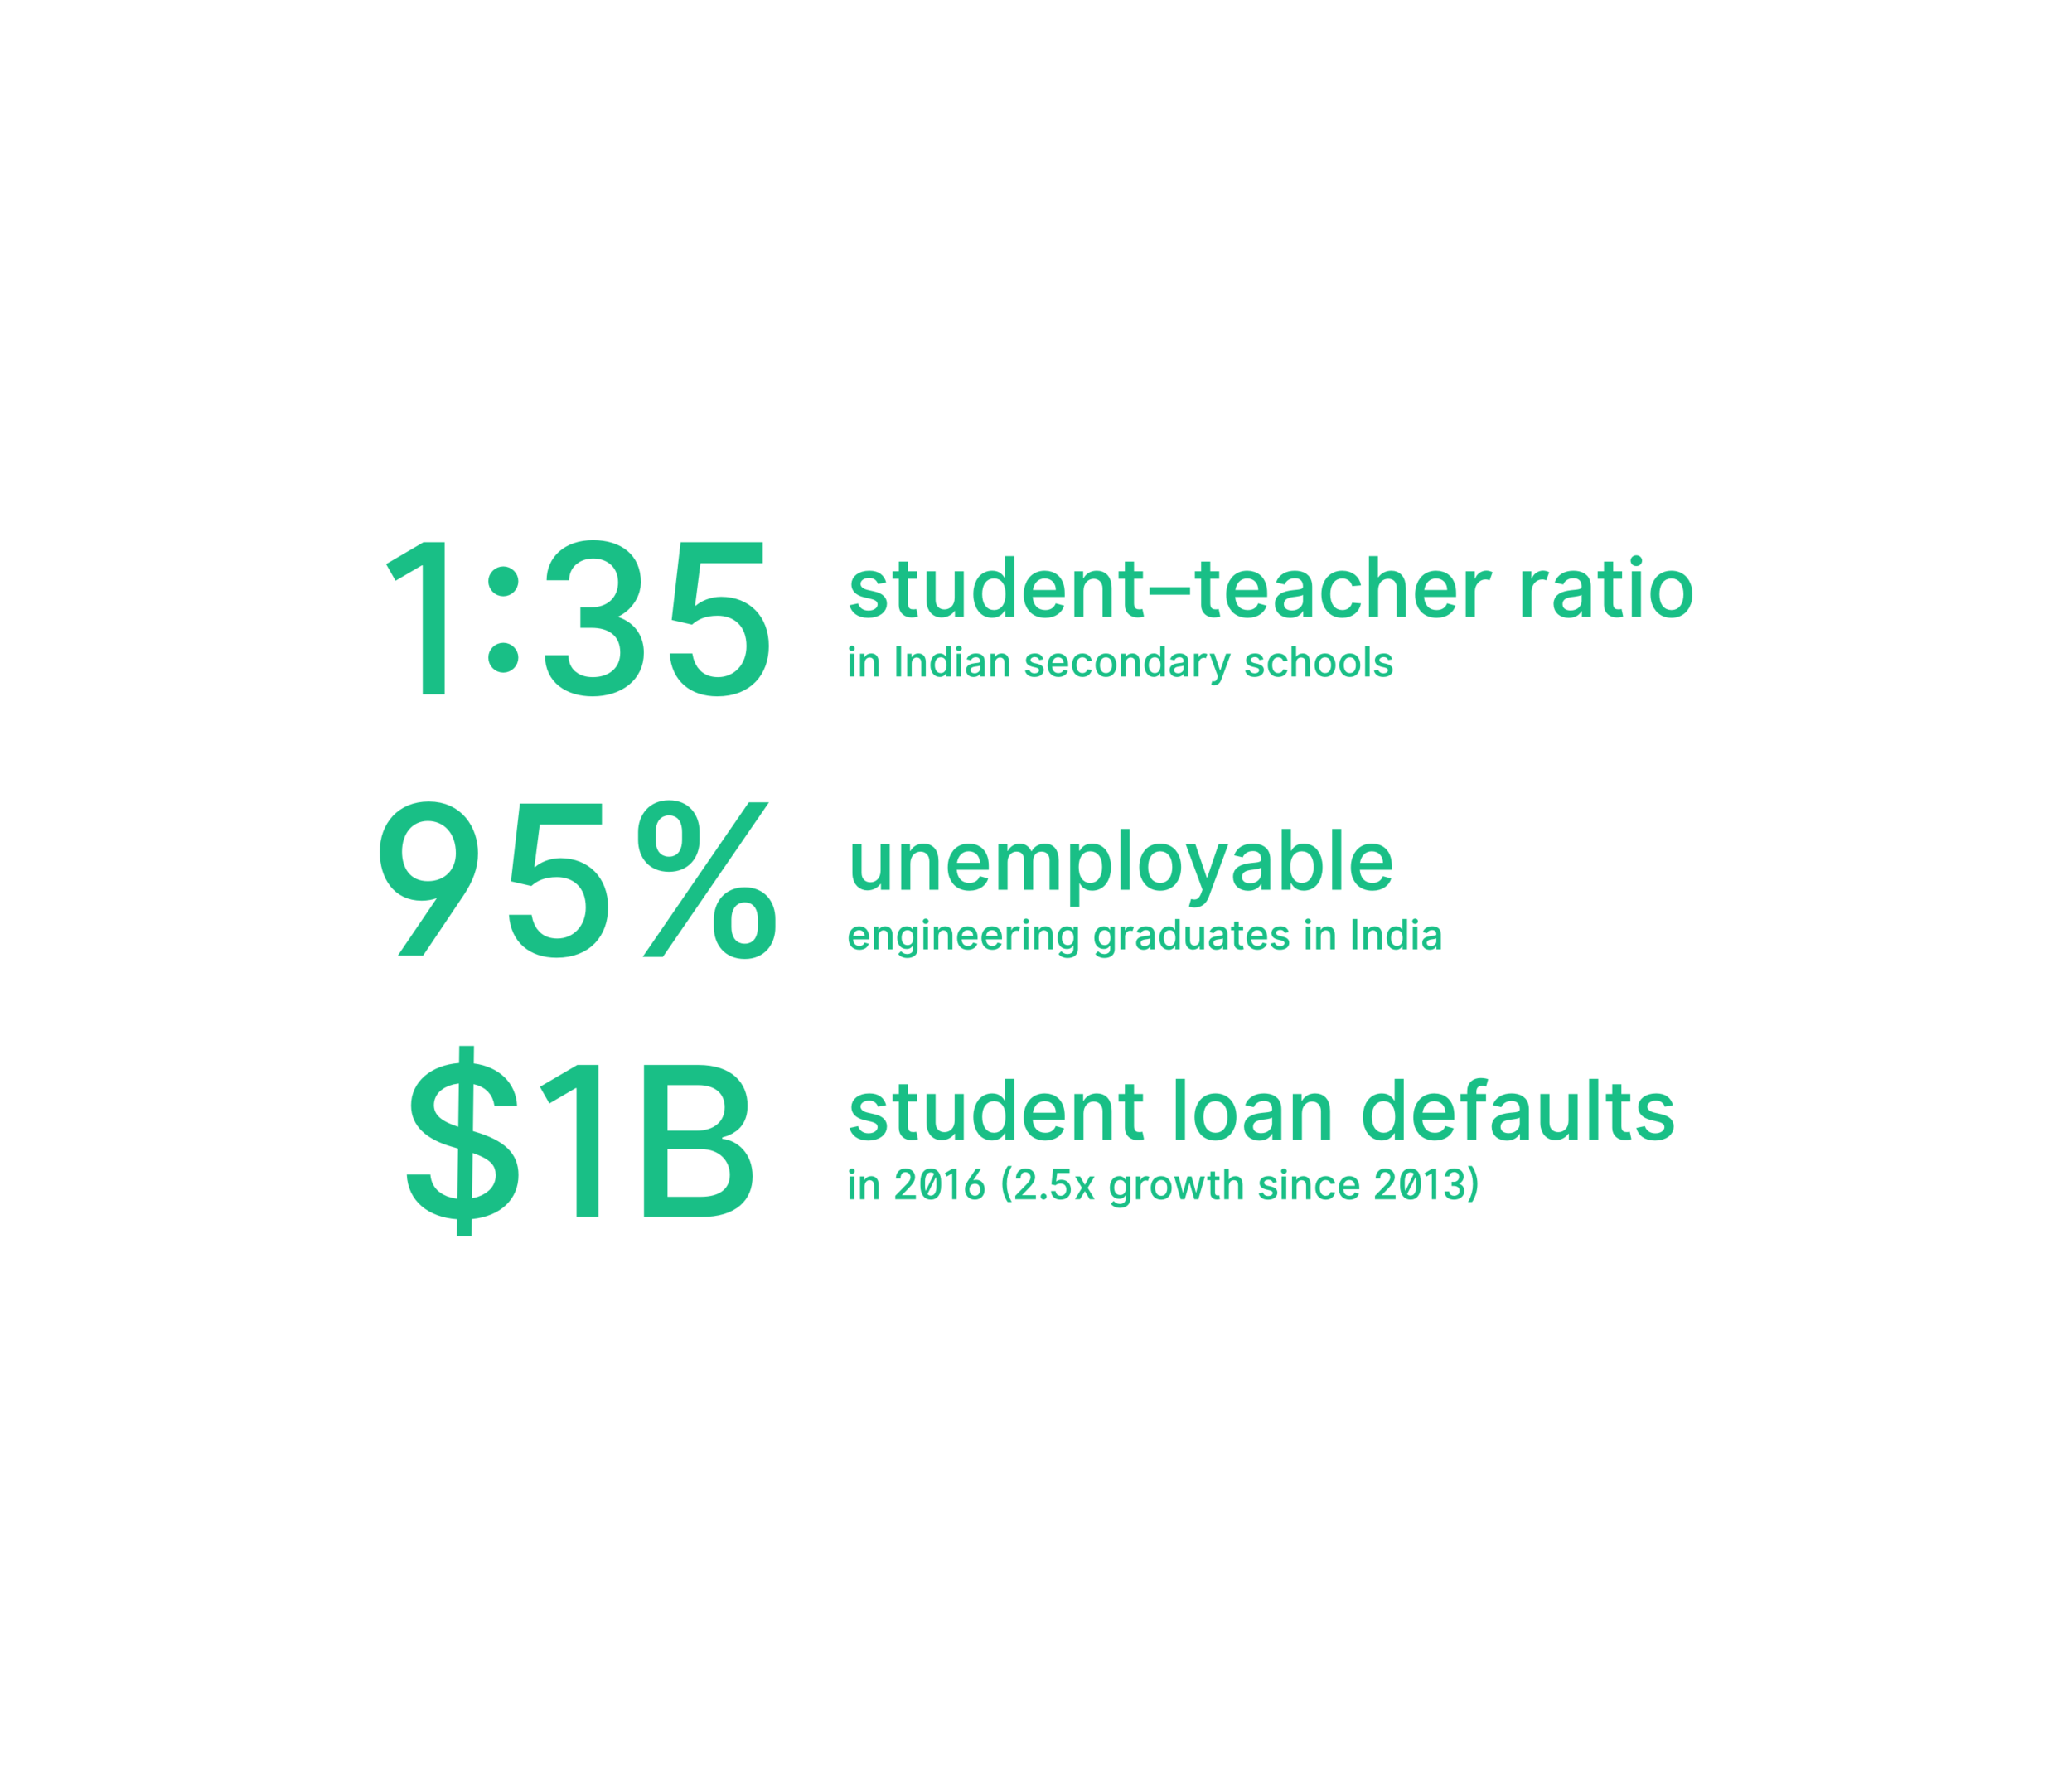 A broken education system - There is one teacher for every 35 students in Indian secondary schools, and 95% of our engineering graduates are unemployable. The student loan defaults increased at 2.5x between 2013 and 2016 to $1 billion.